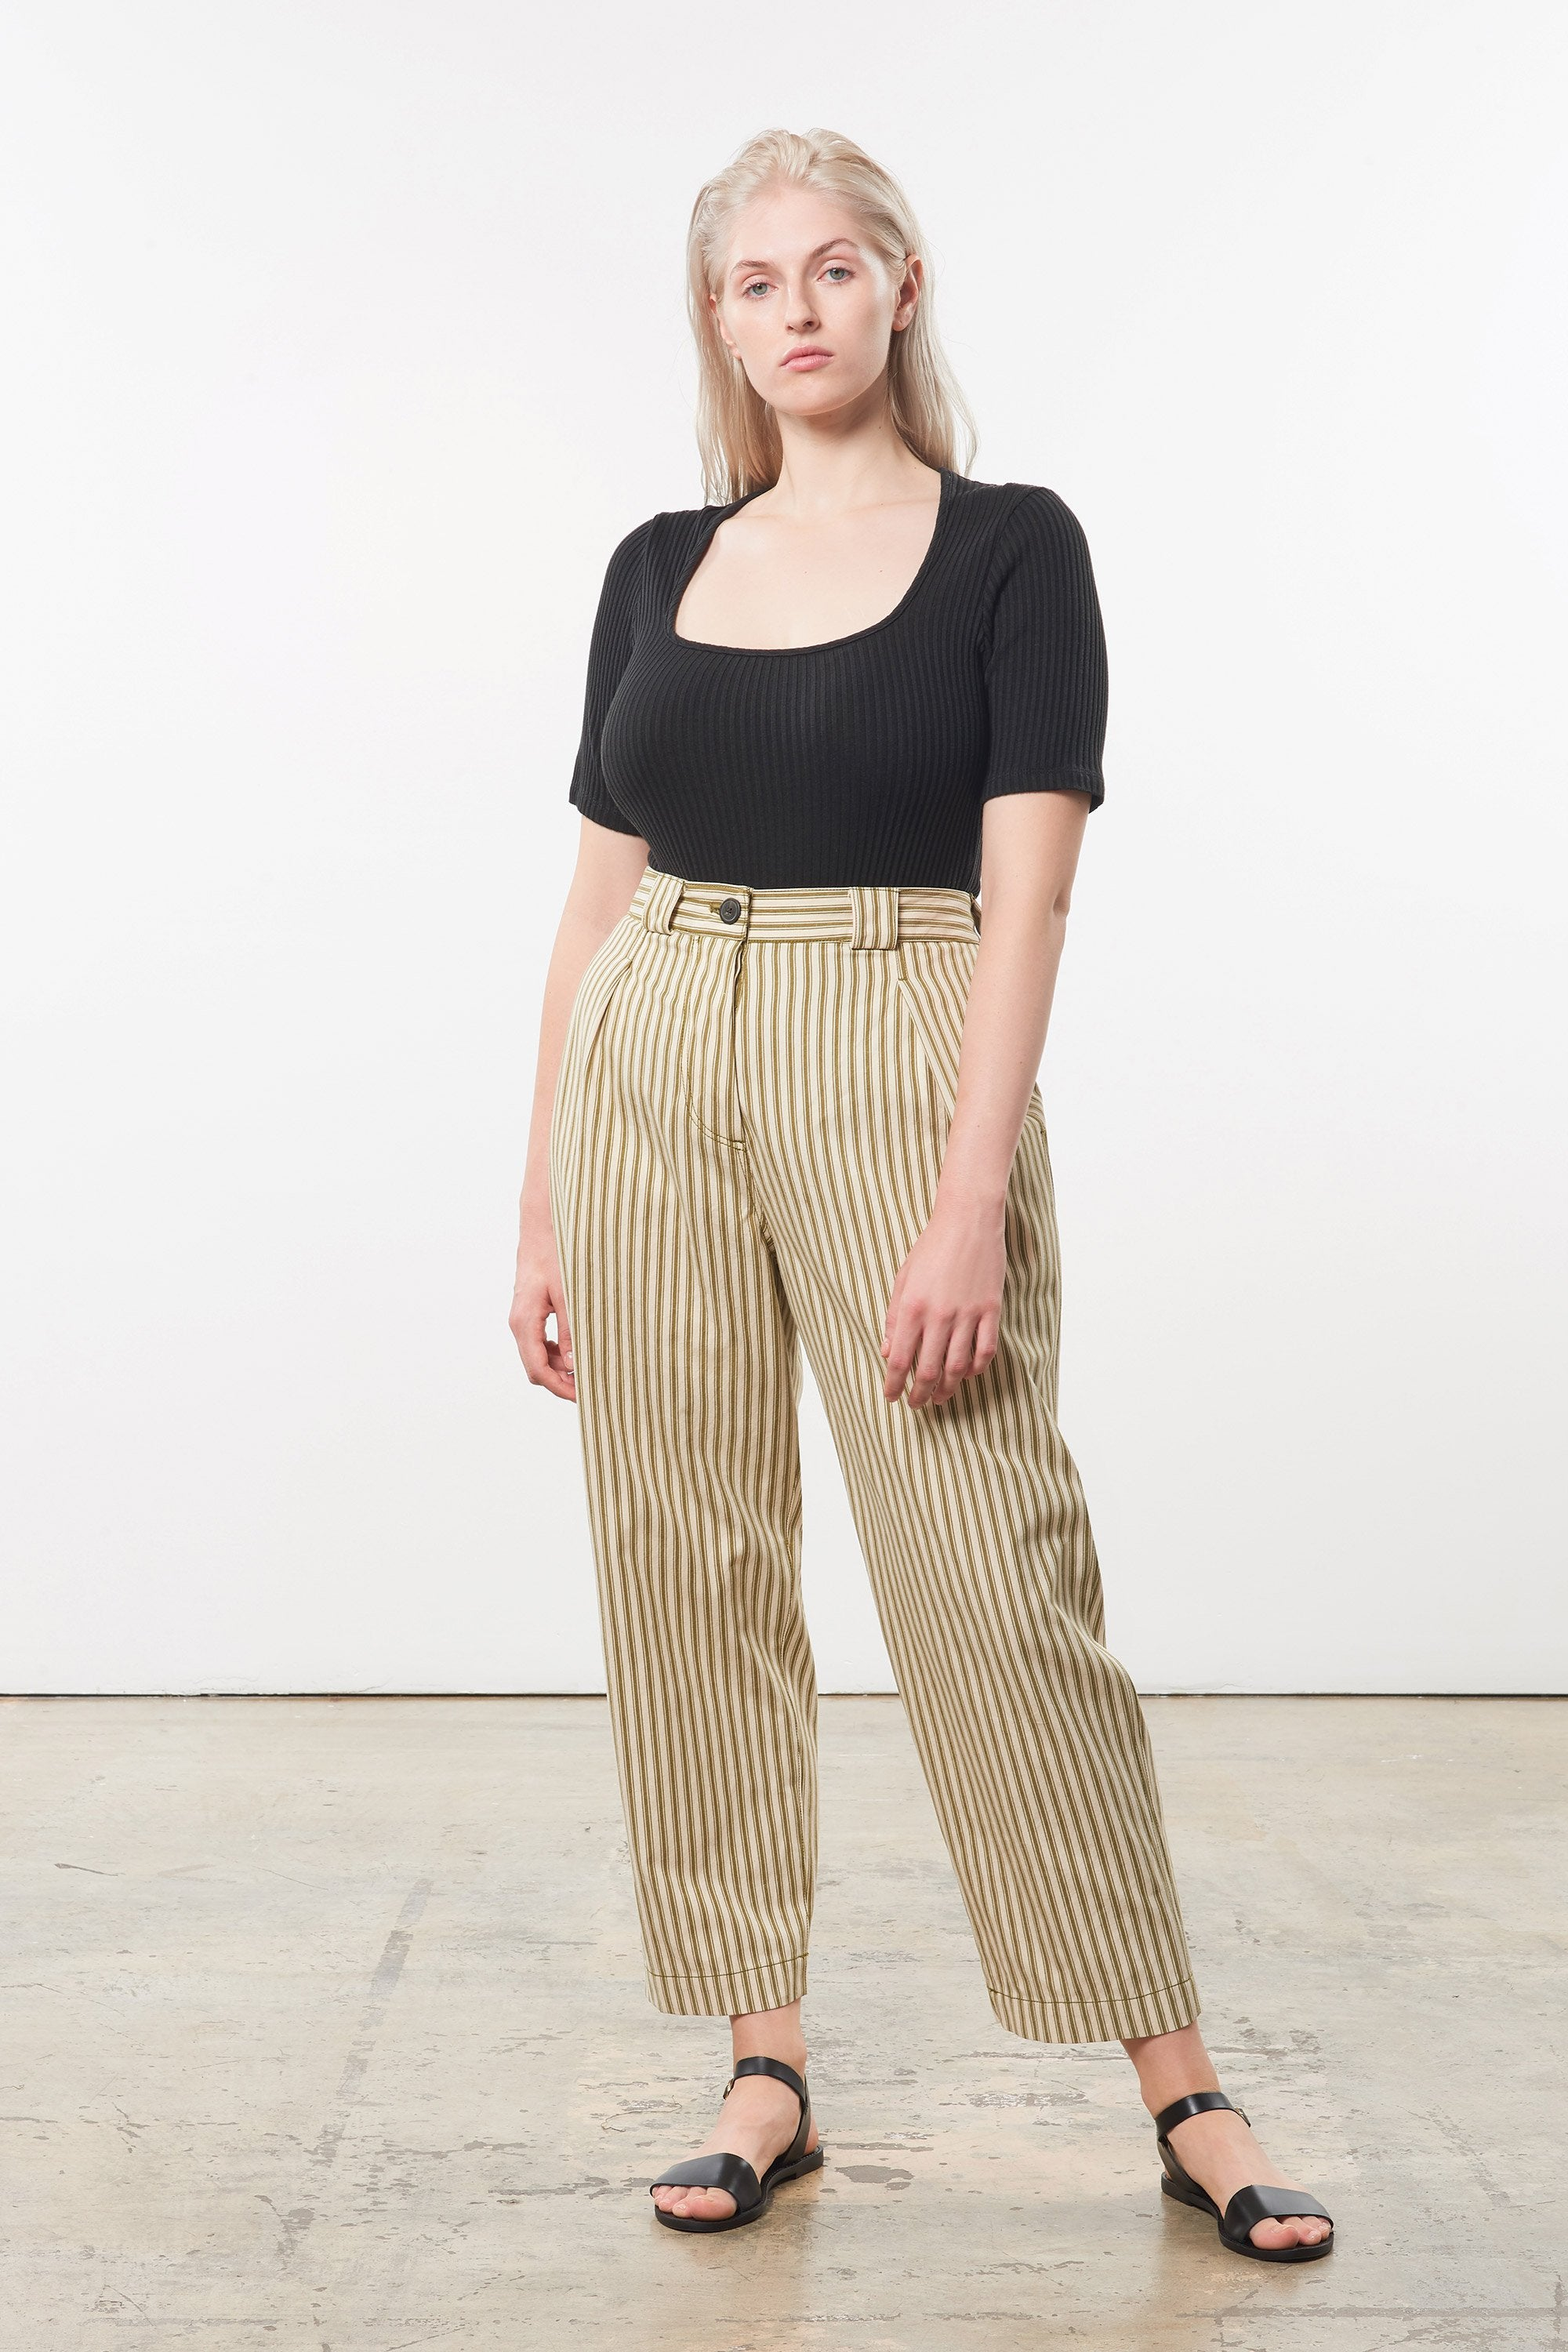 Mara Hoffman Extended Olive Jade Pant in Tencel lyocell and organic cotton (front)